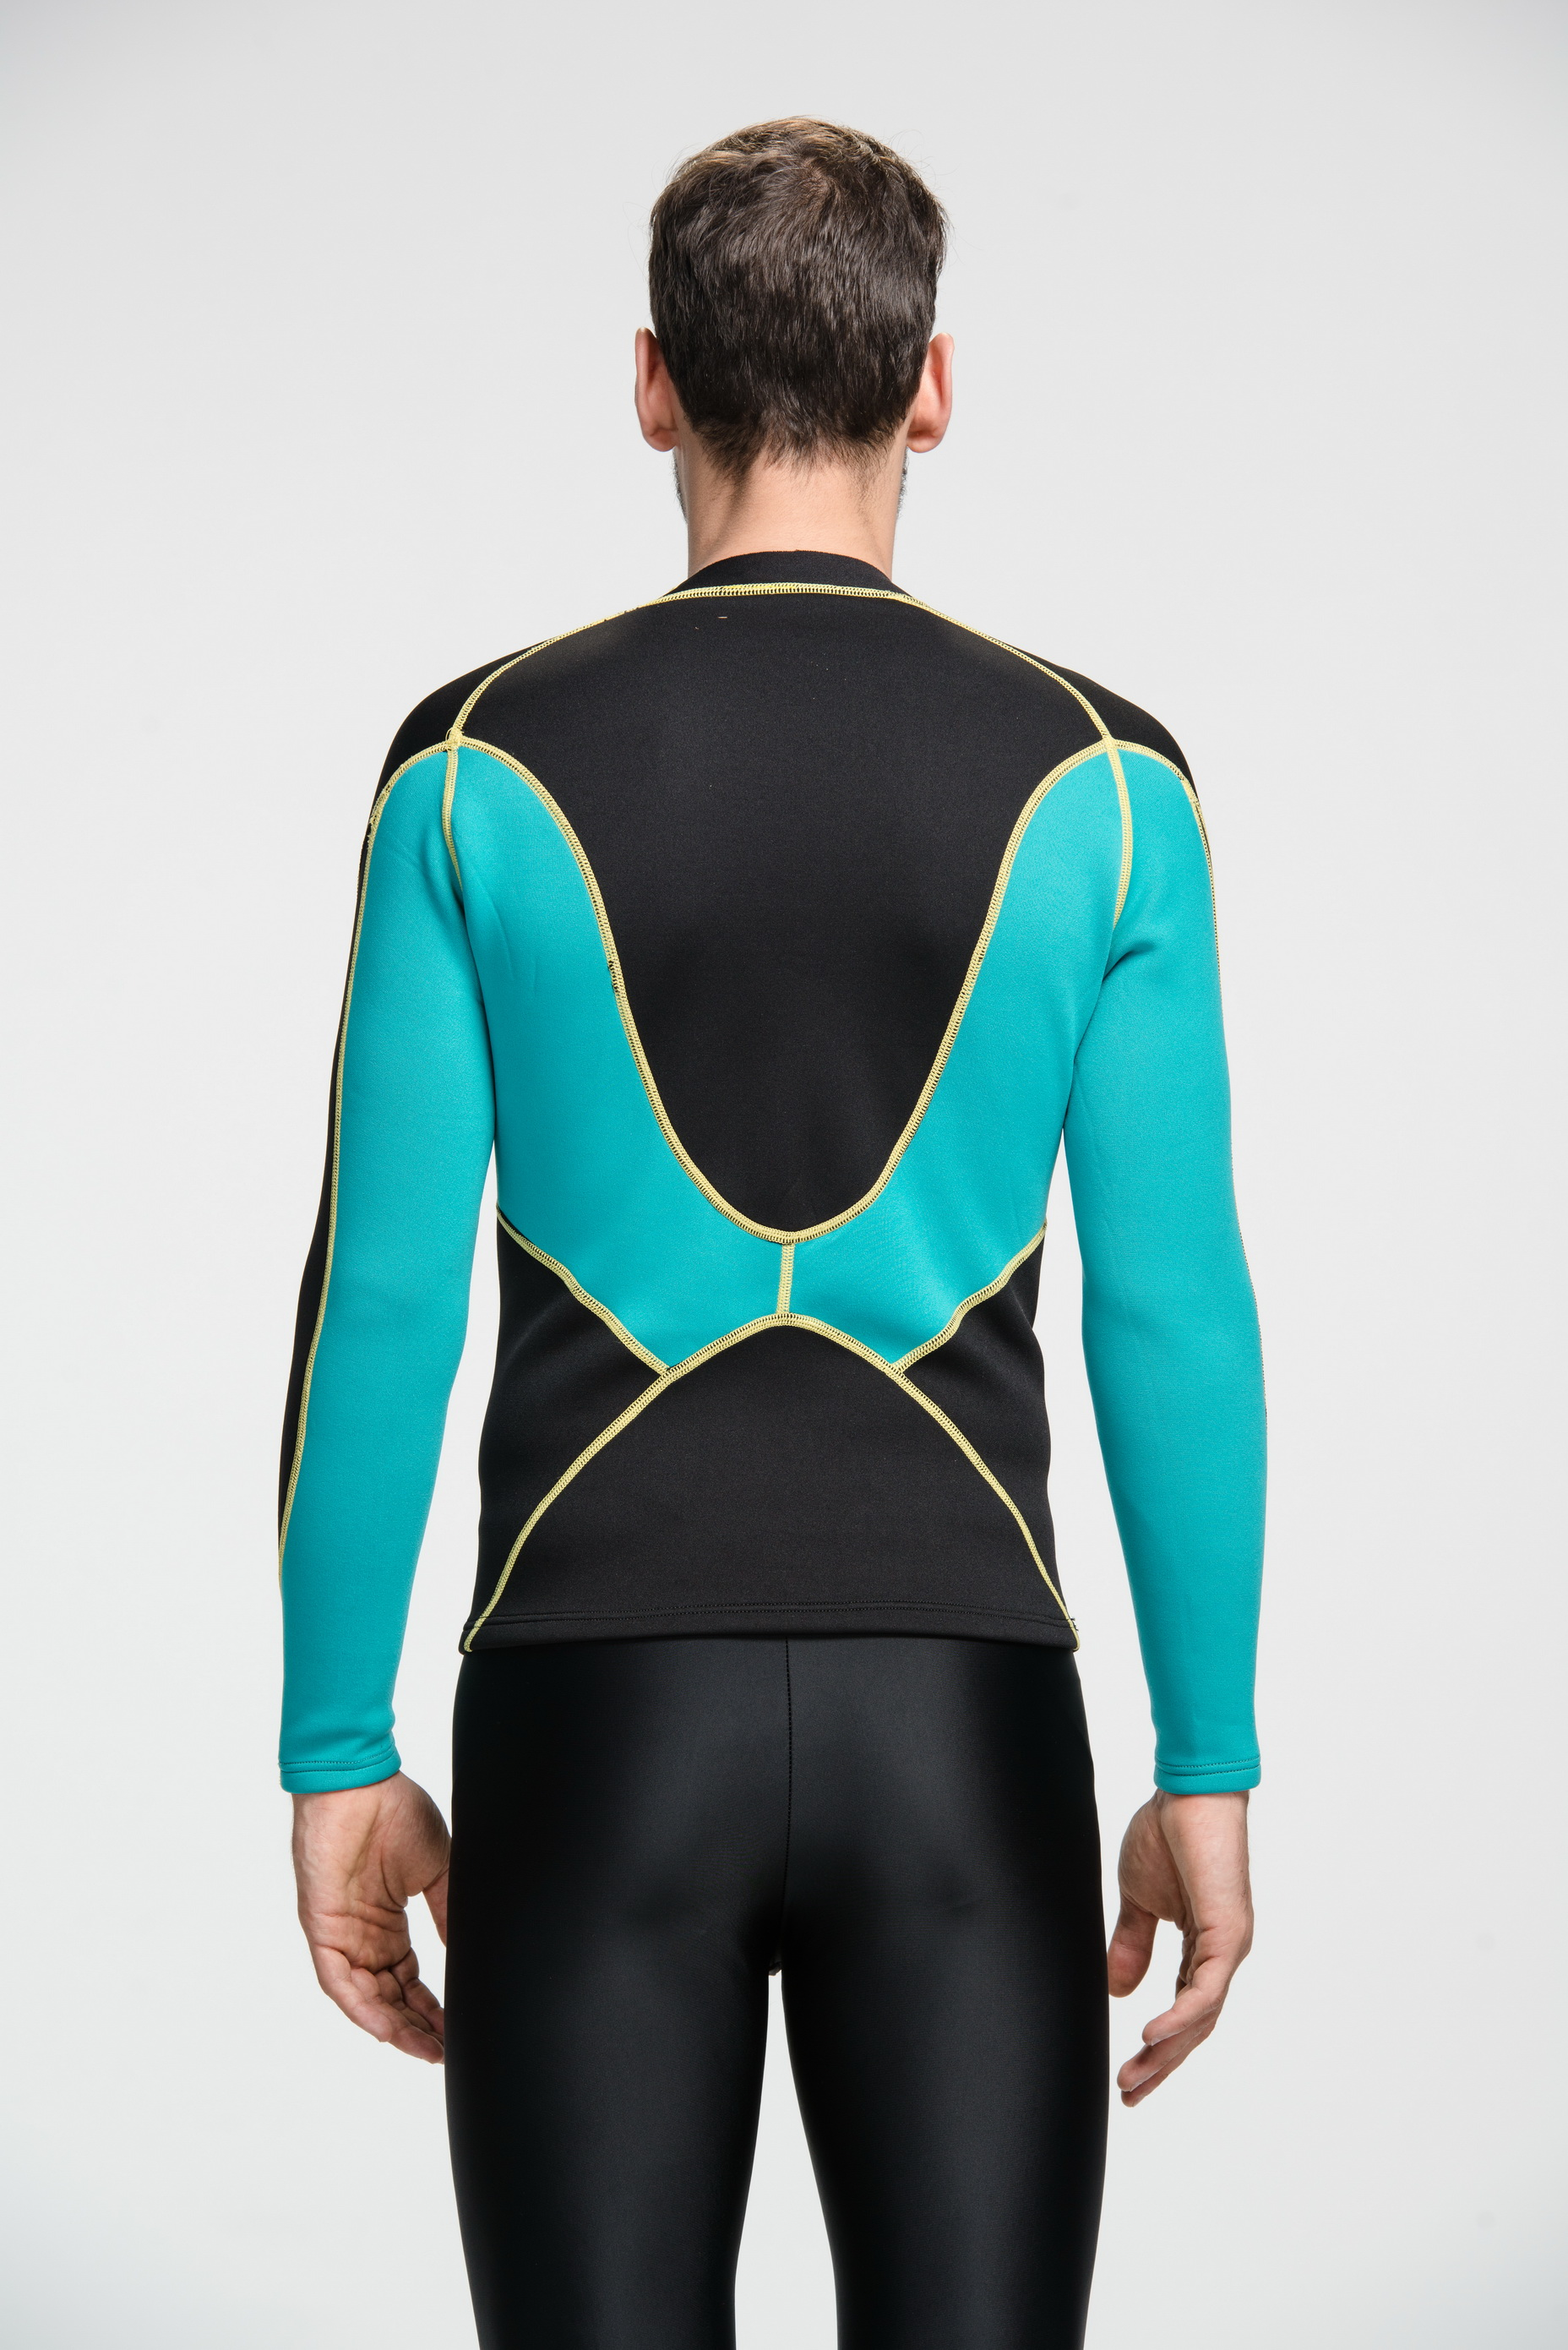 2015 3mm neoprene dive wetsuit for diving one piece